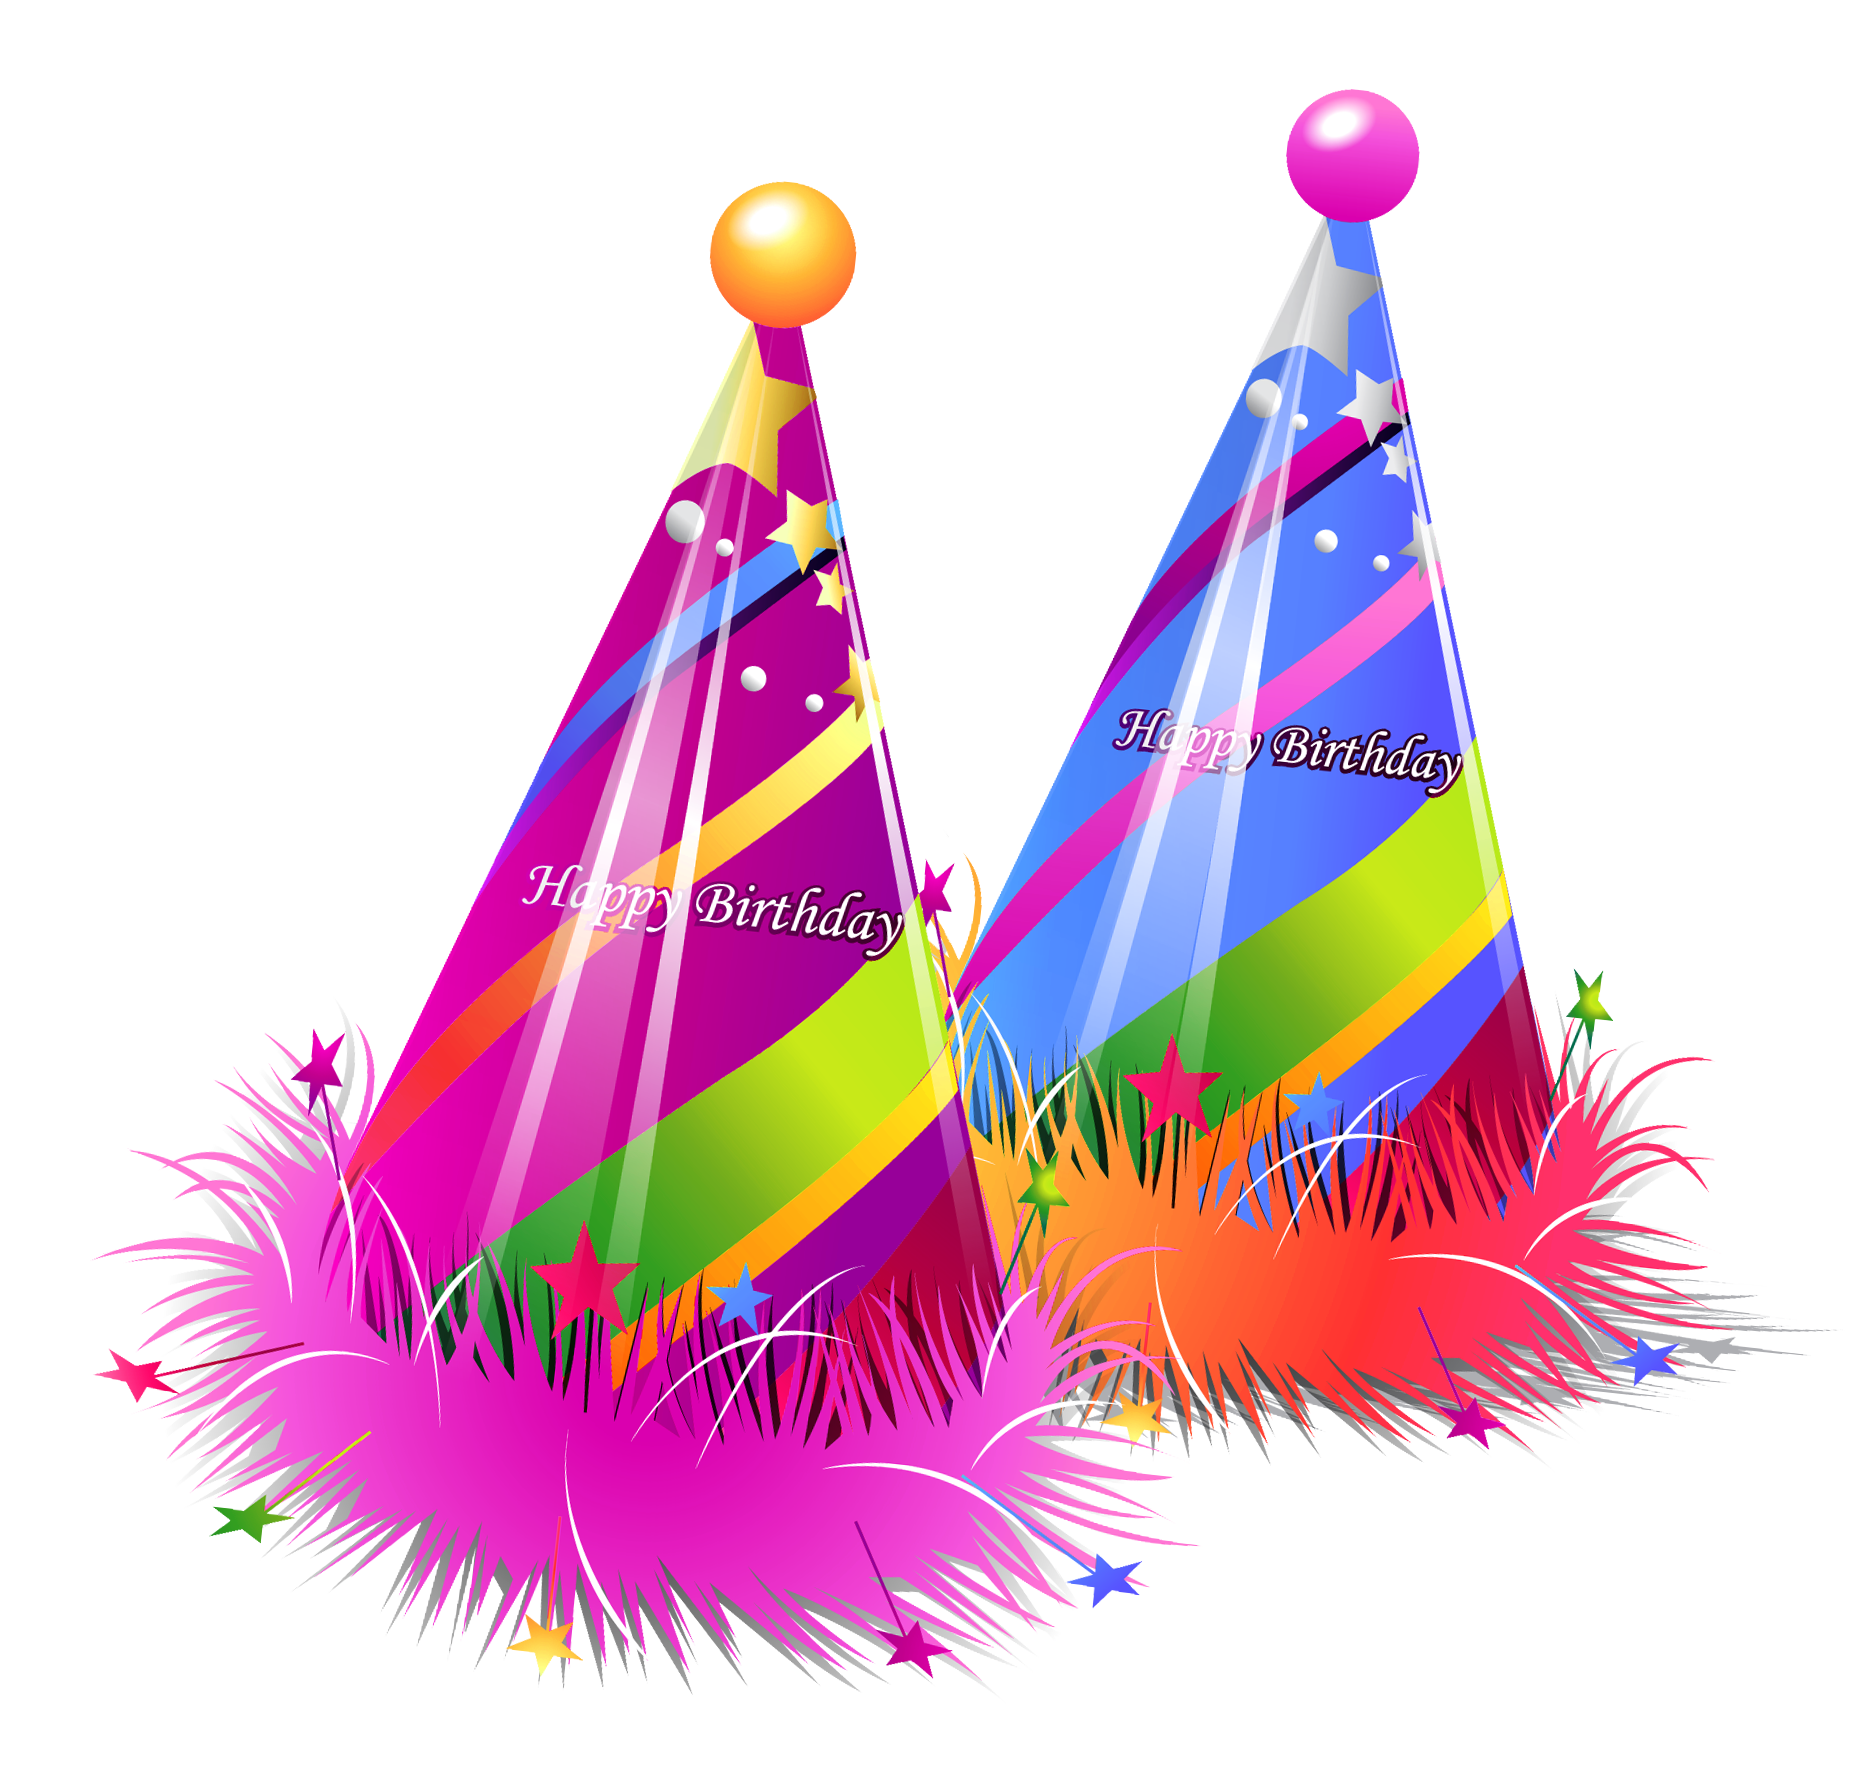 Party hats transparent png. Cone clipart happy birthday